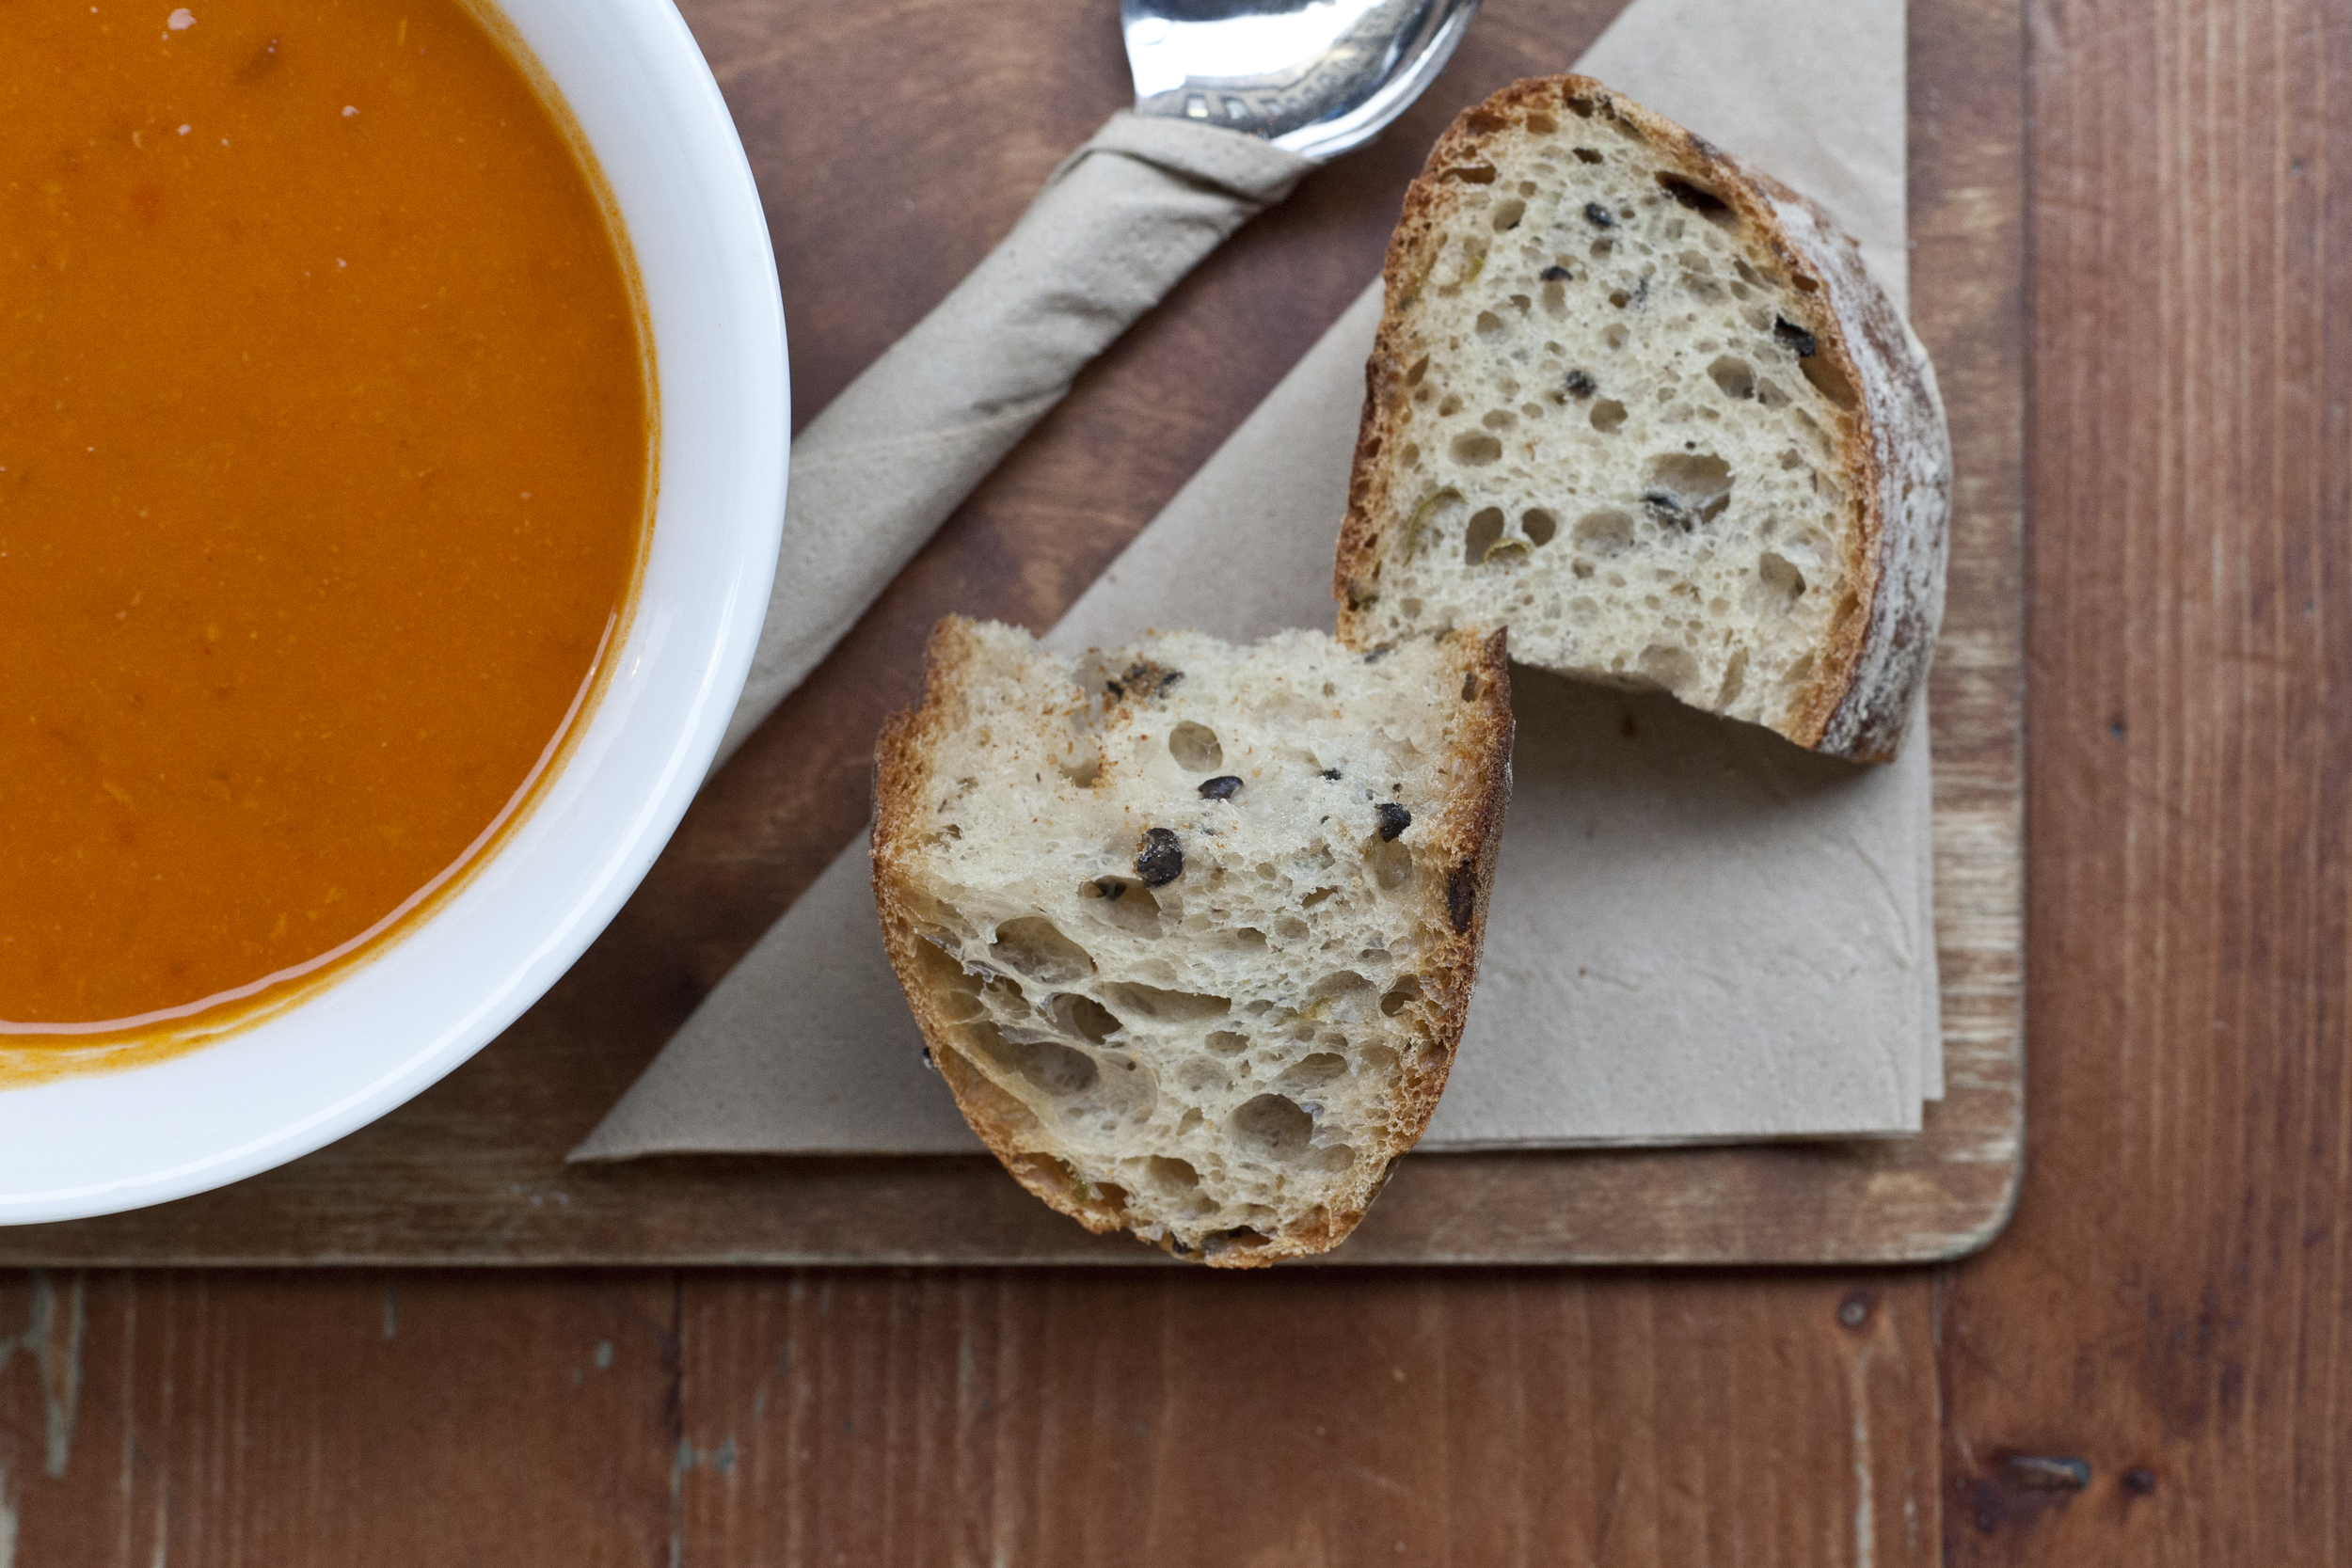 Union of Genius' soups are so good, they've won two Great Taste awards and the title of 'Best Soup in Scotland'.